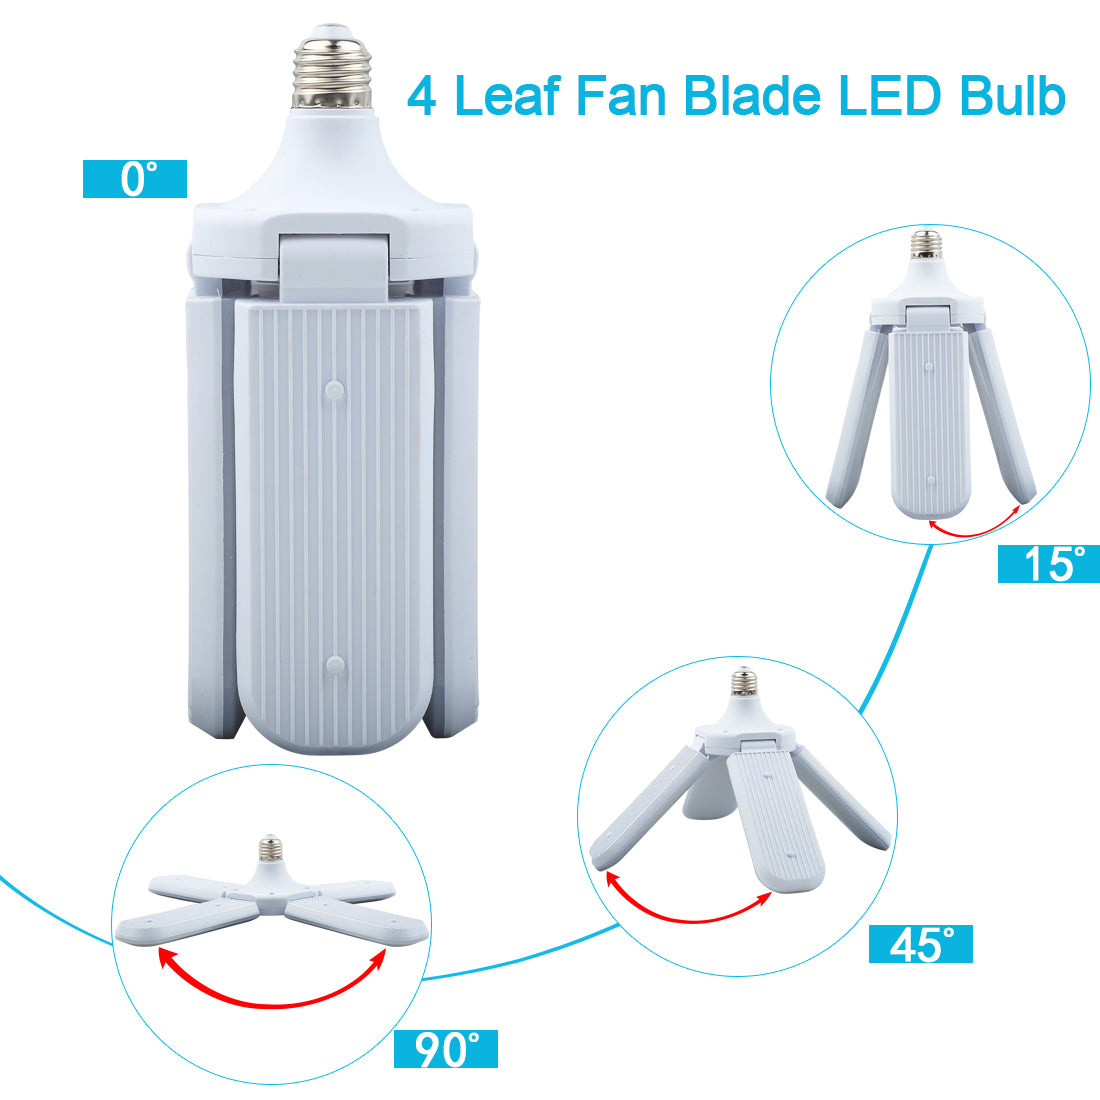 4 leaf garage light,Adjustable E26 Fan Blade LED Light Bulb ceiling light